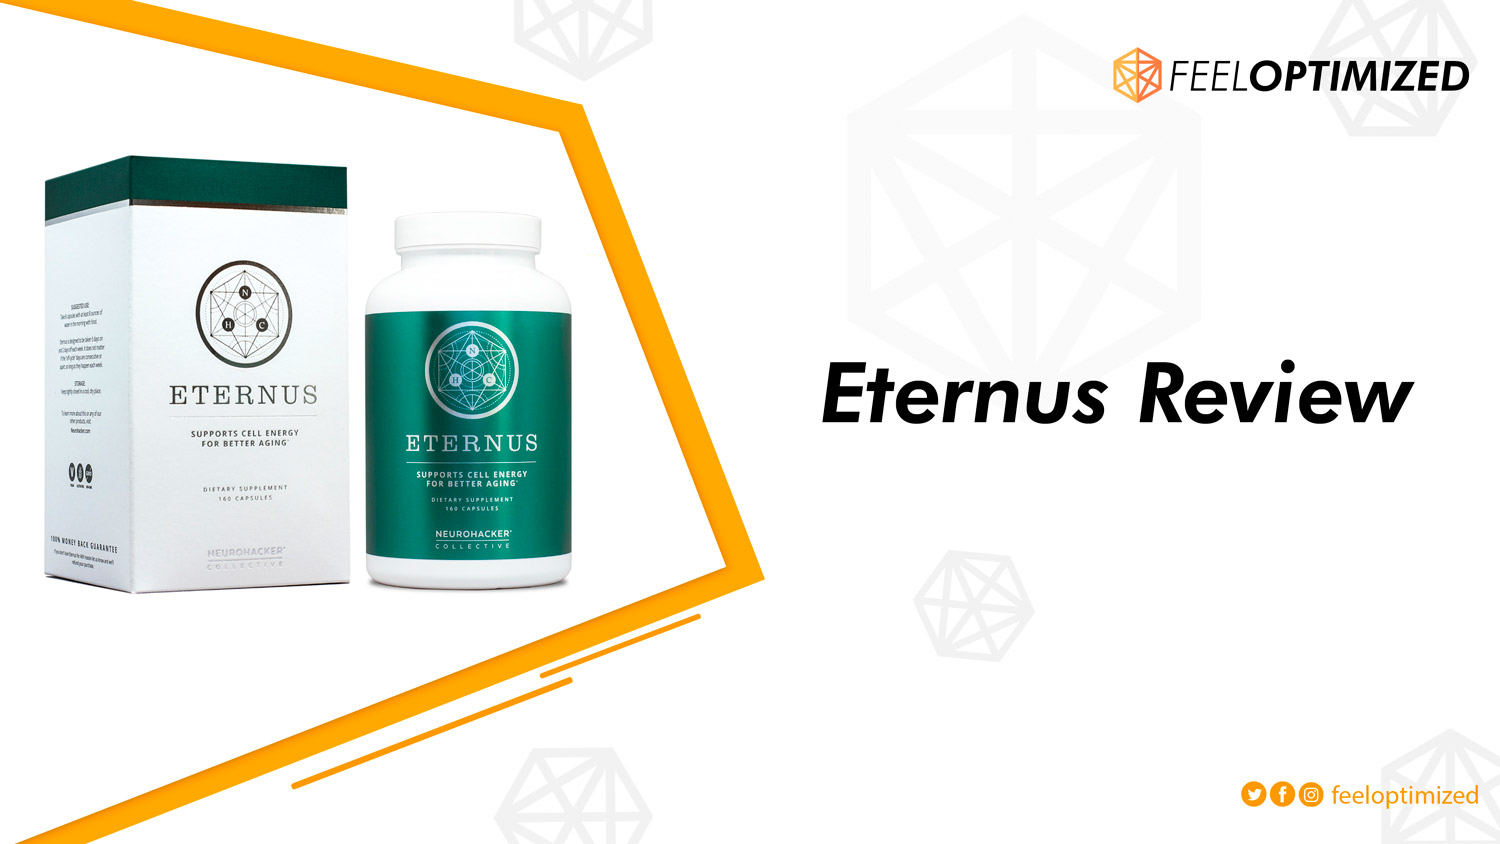 eternus-review